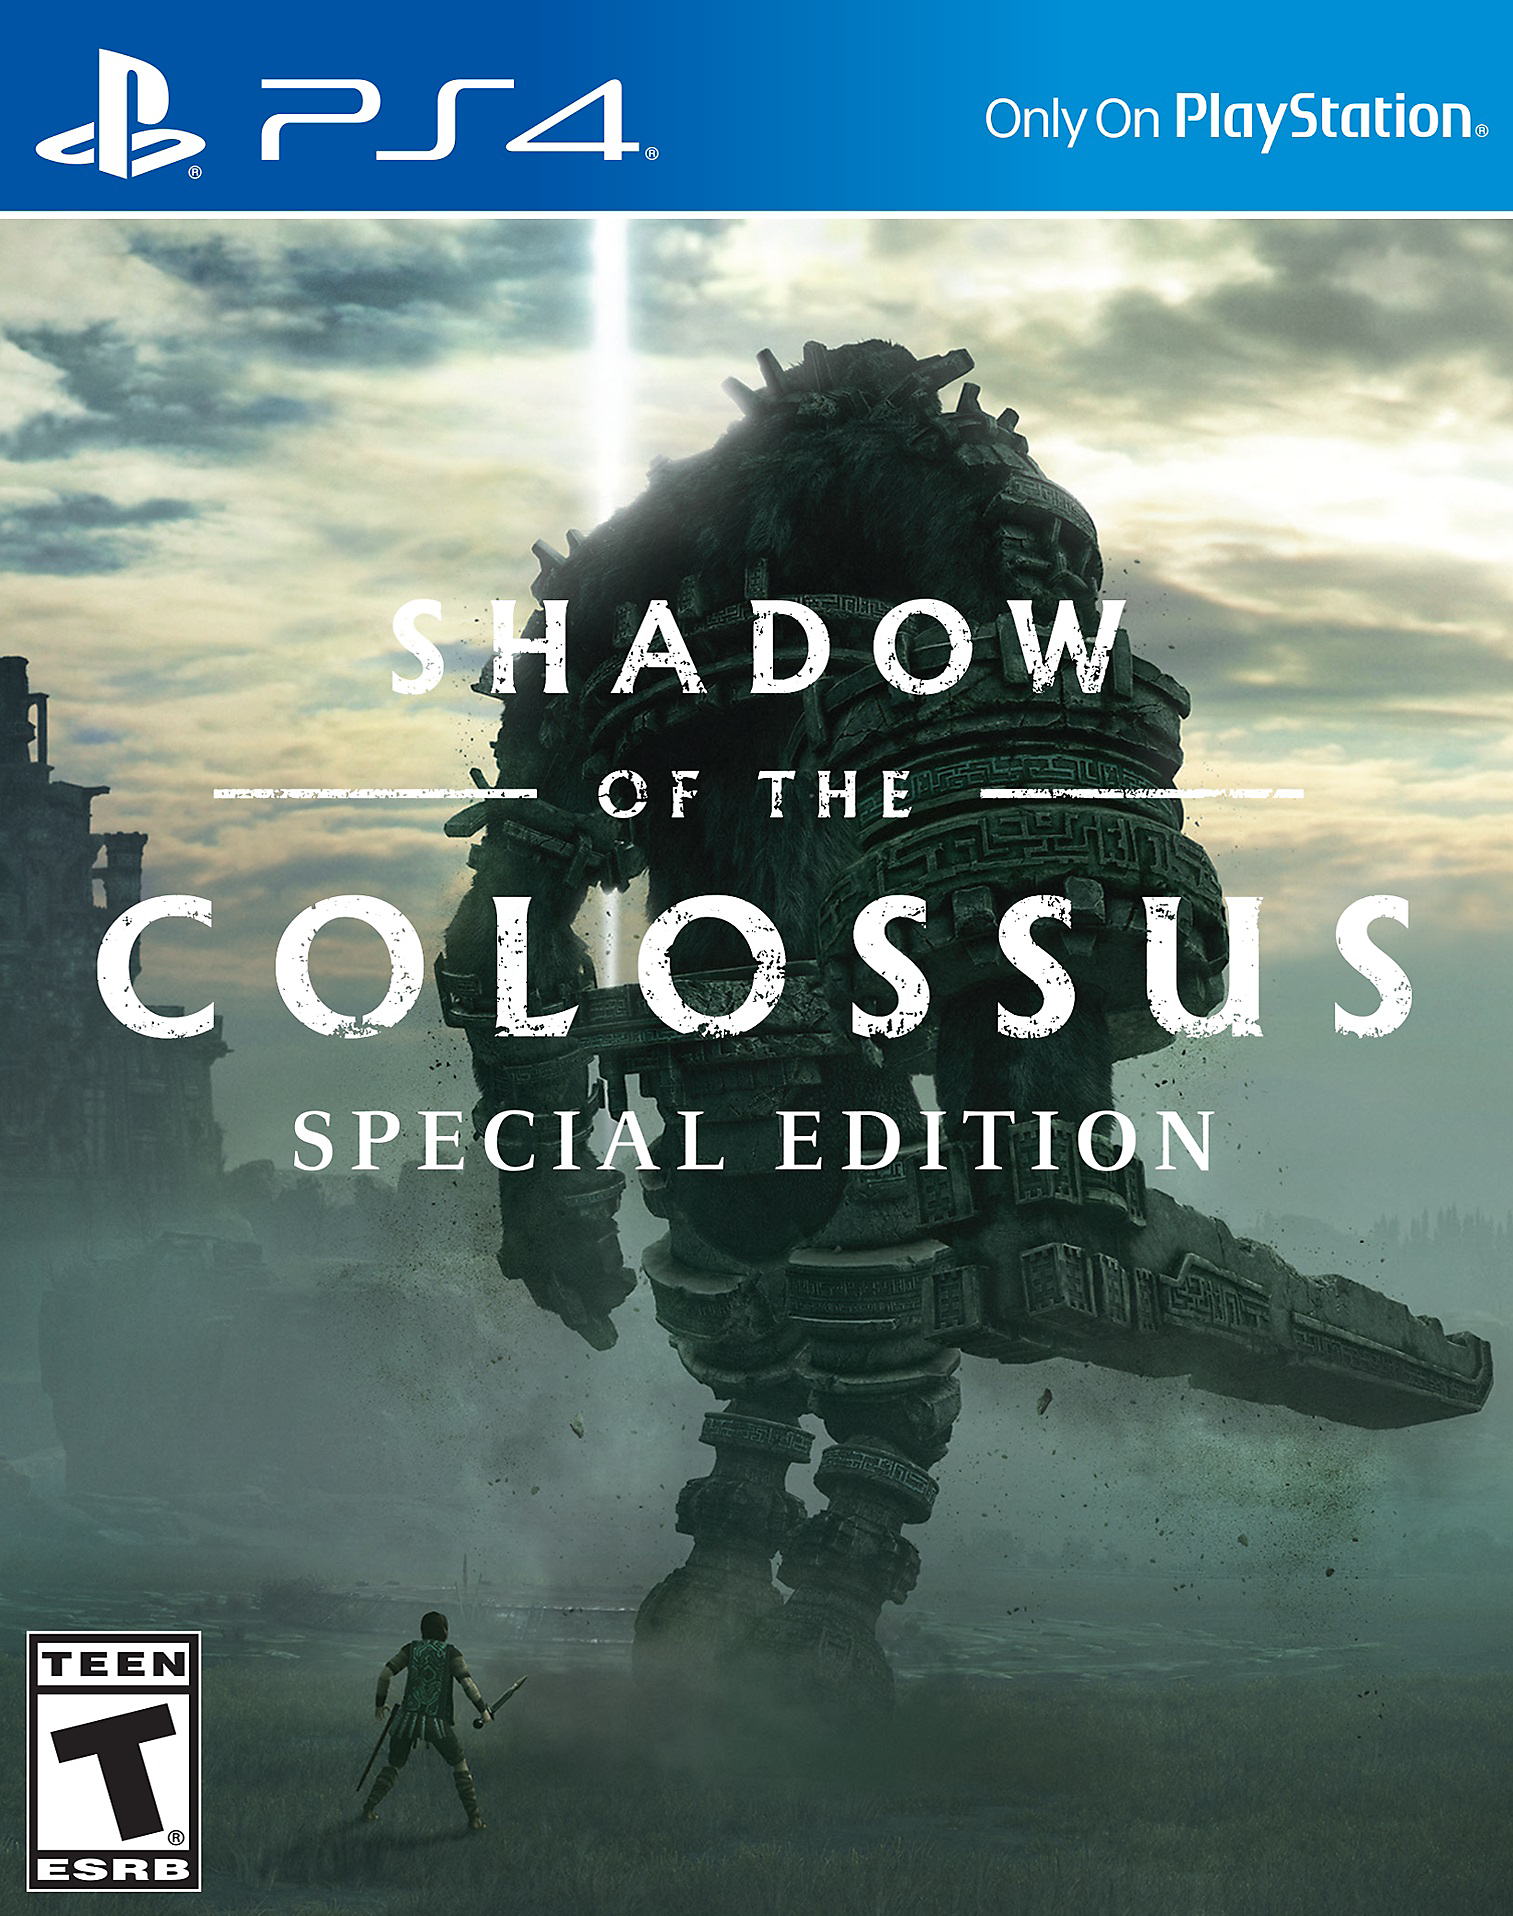 shadow-of-the-colossus-special-edition-box-art-02-ps4-us-25jan18.png